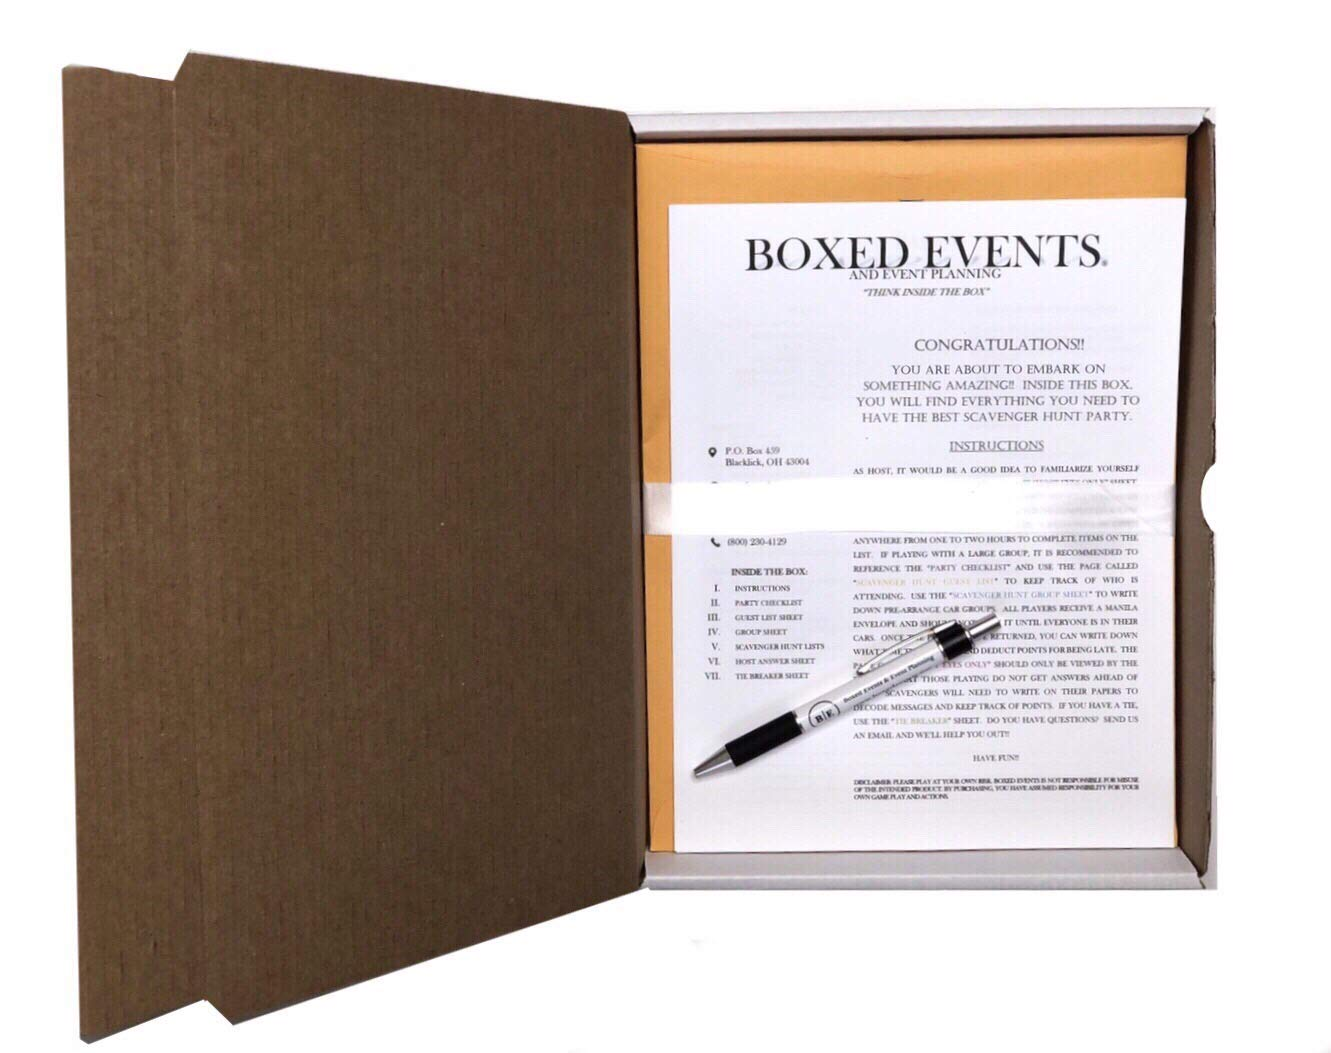 Scavenger Hunt Game Party Box - Fun for All Ages - Everything Included to Have A Party - Three Faces by Boxed Events & Event Planning Co.